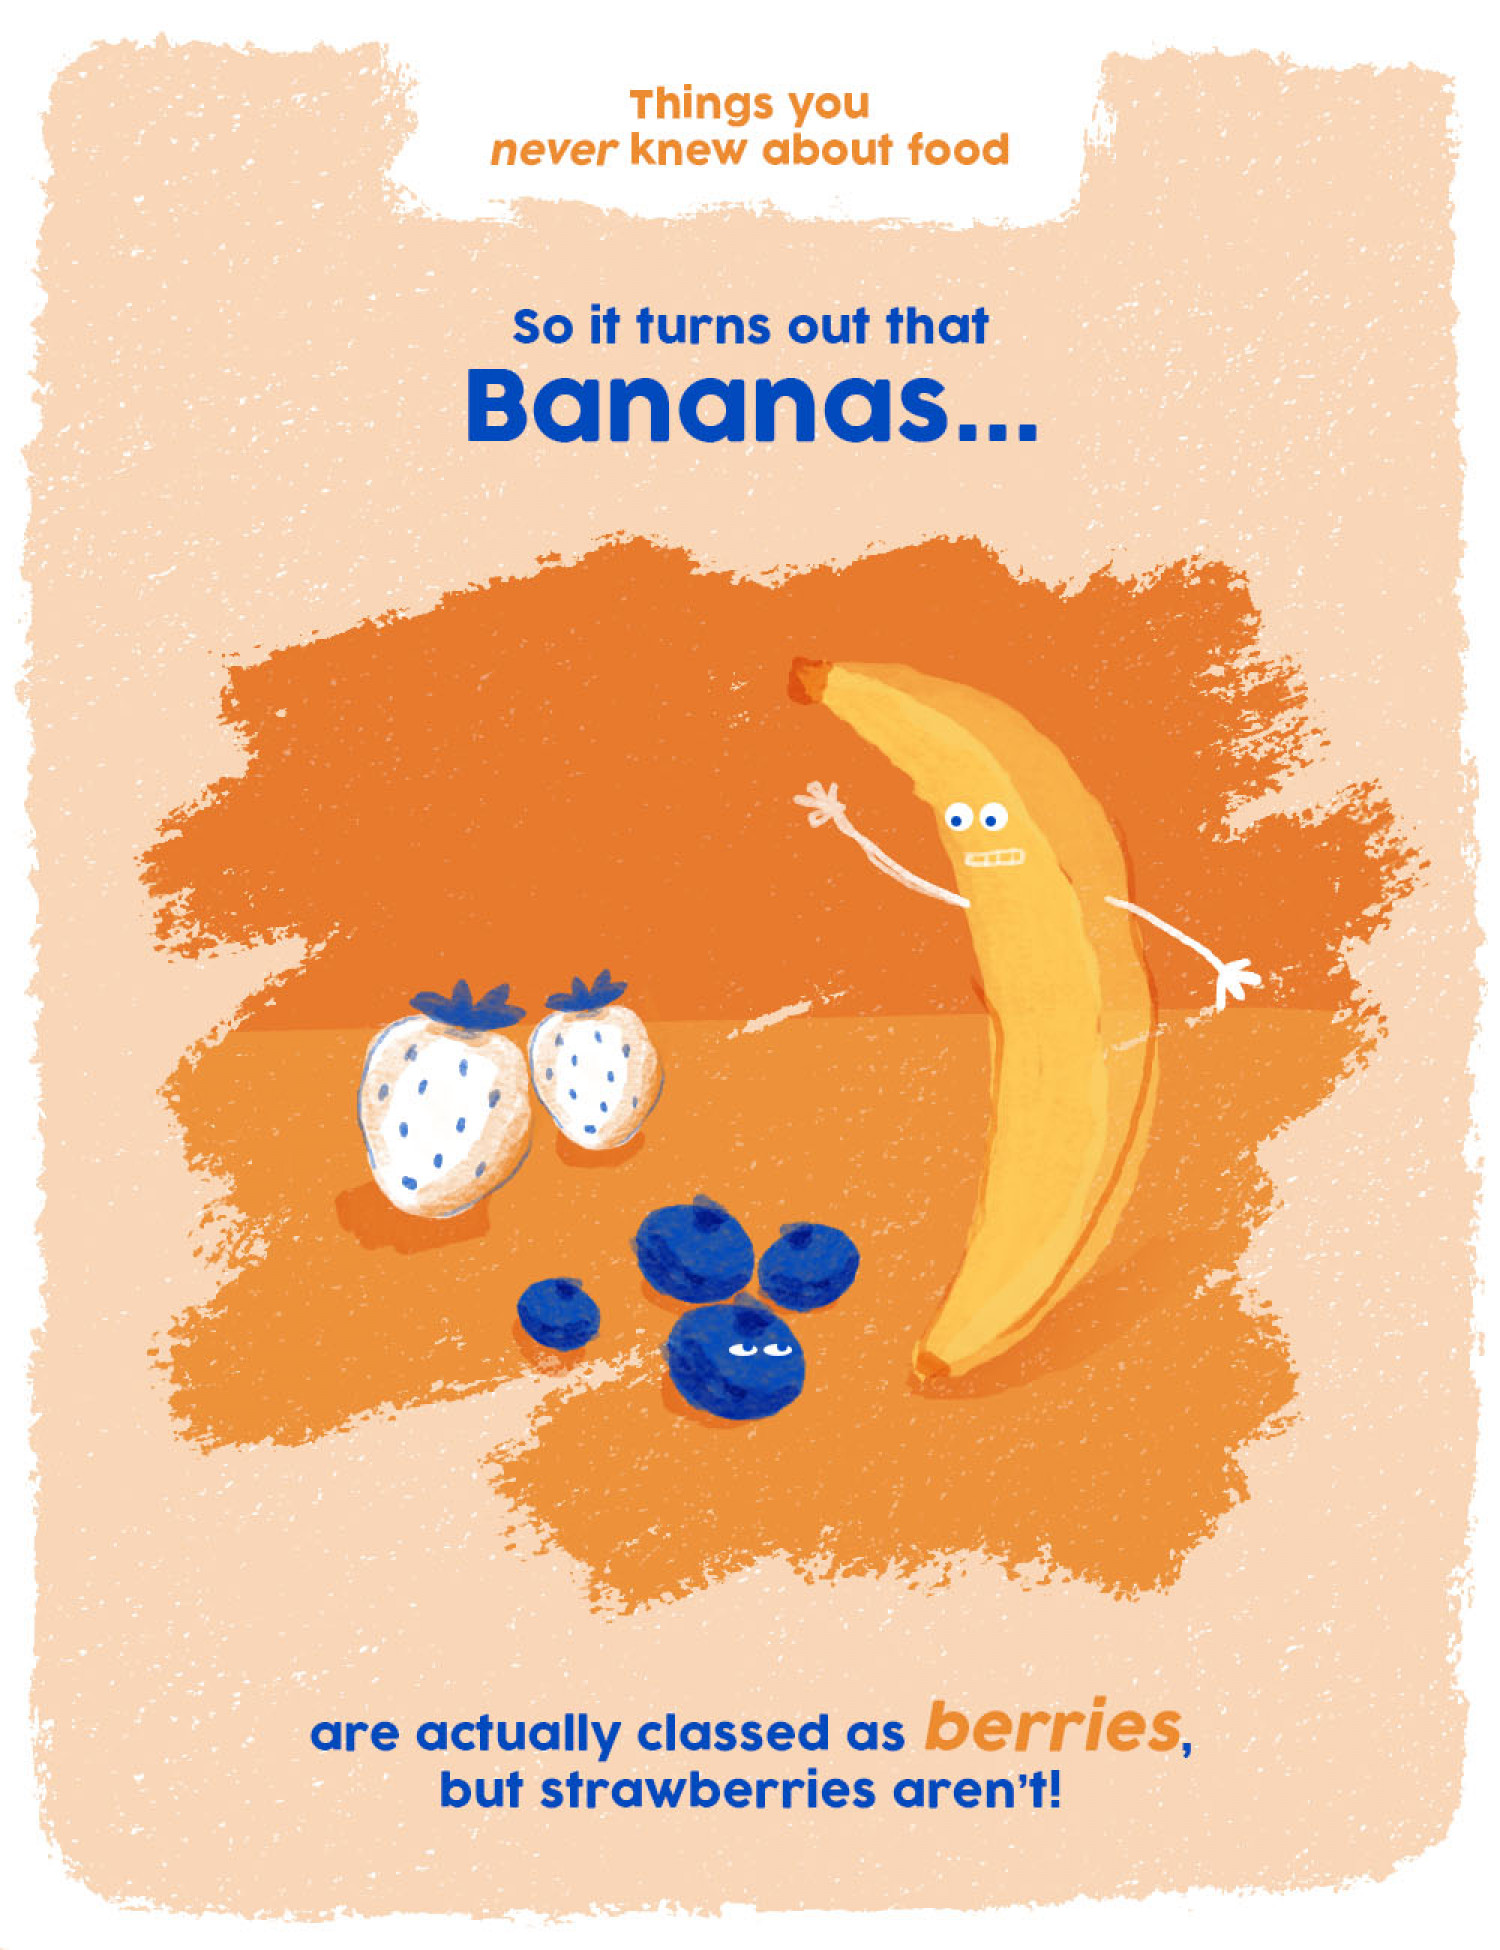 Things You Never Knew About Food: Bananas Infographic